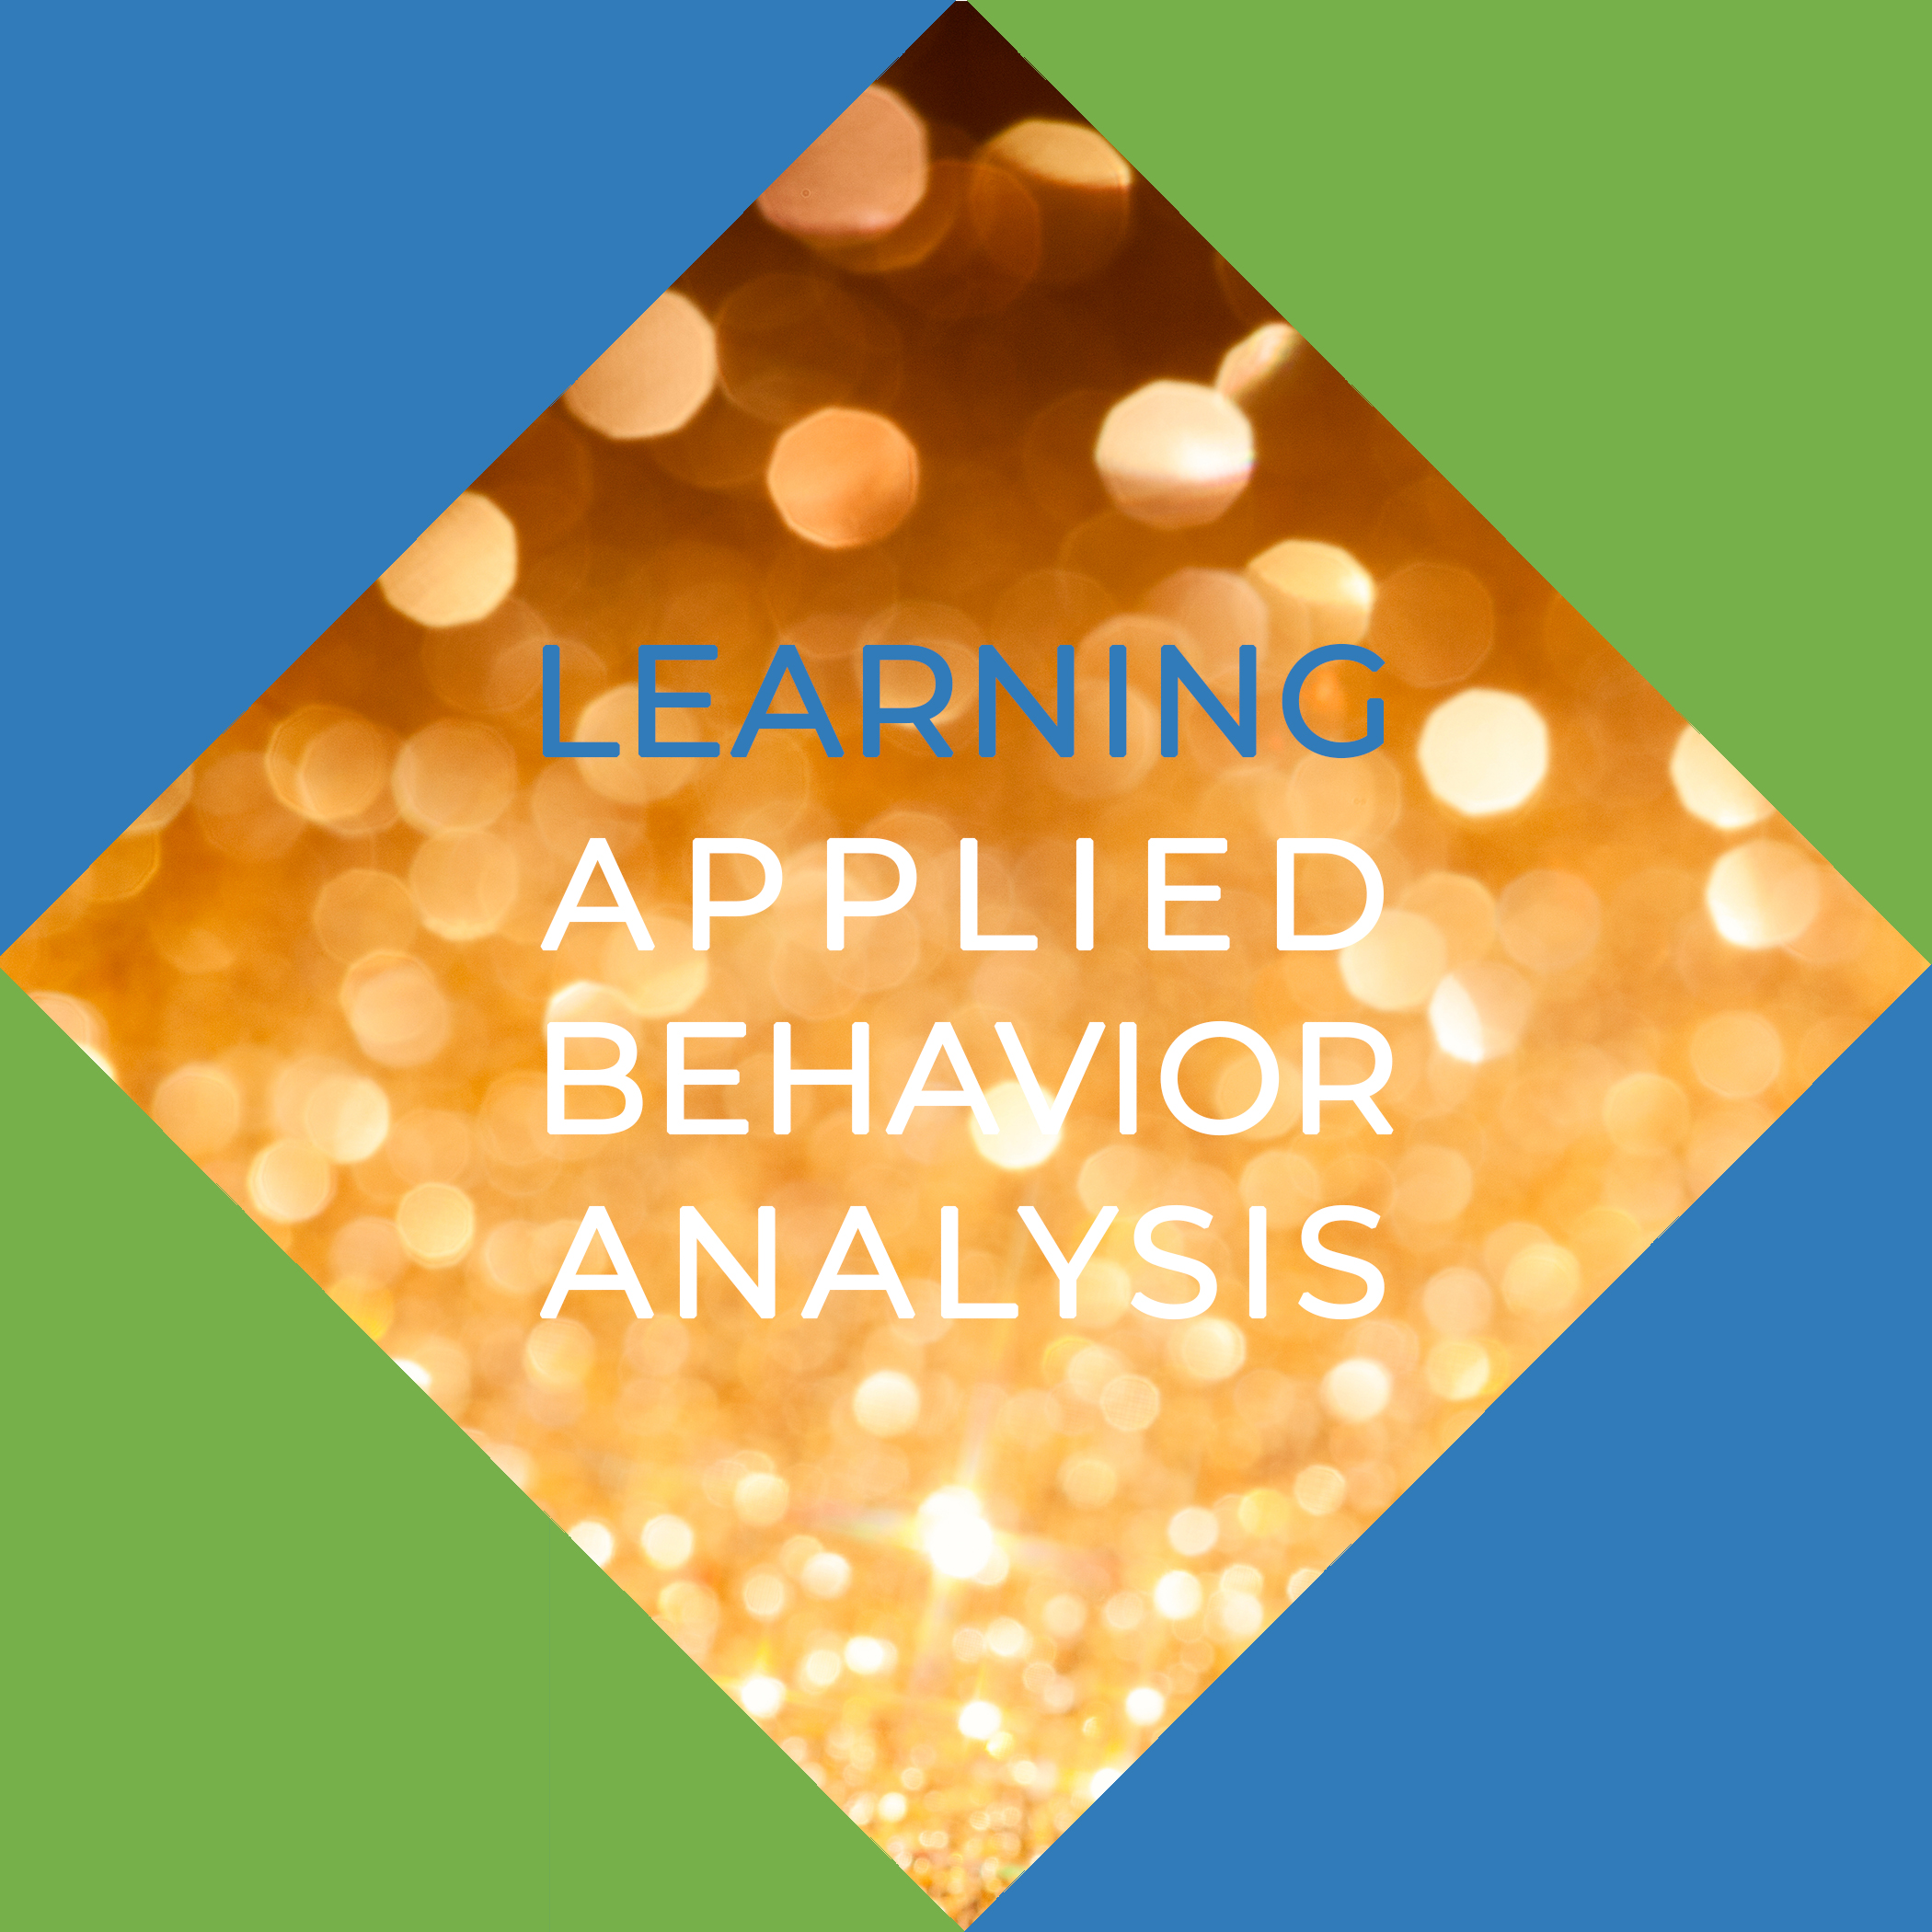 Learning Applied Behavior Analysis   What is the Relevance of Behavior Rule? Why do teachers use marble jars in their classrooms? Learn and stay up to date with some of the greatest information out there on Applied Behavior Analysis!